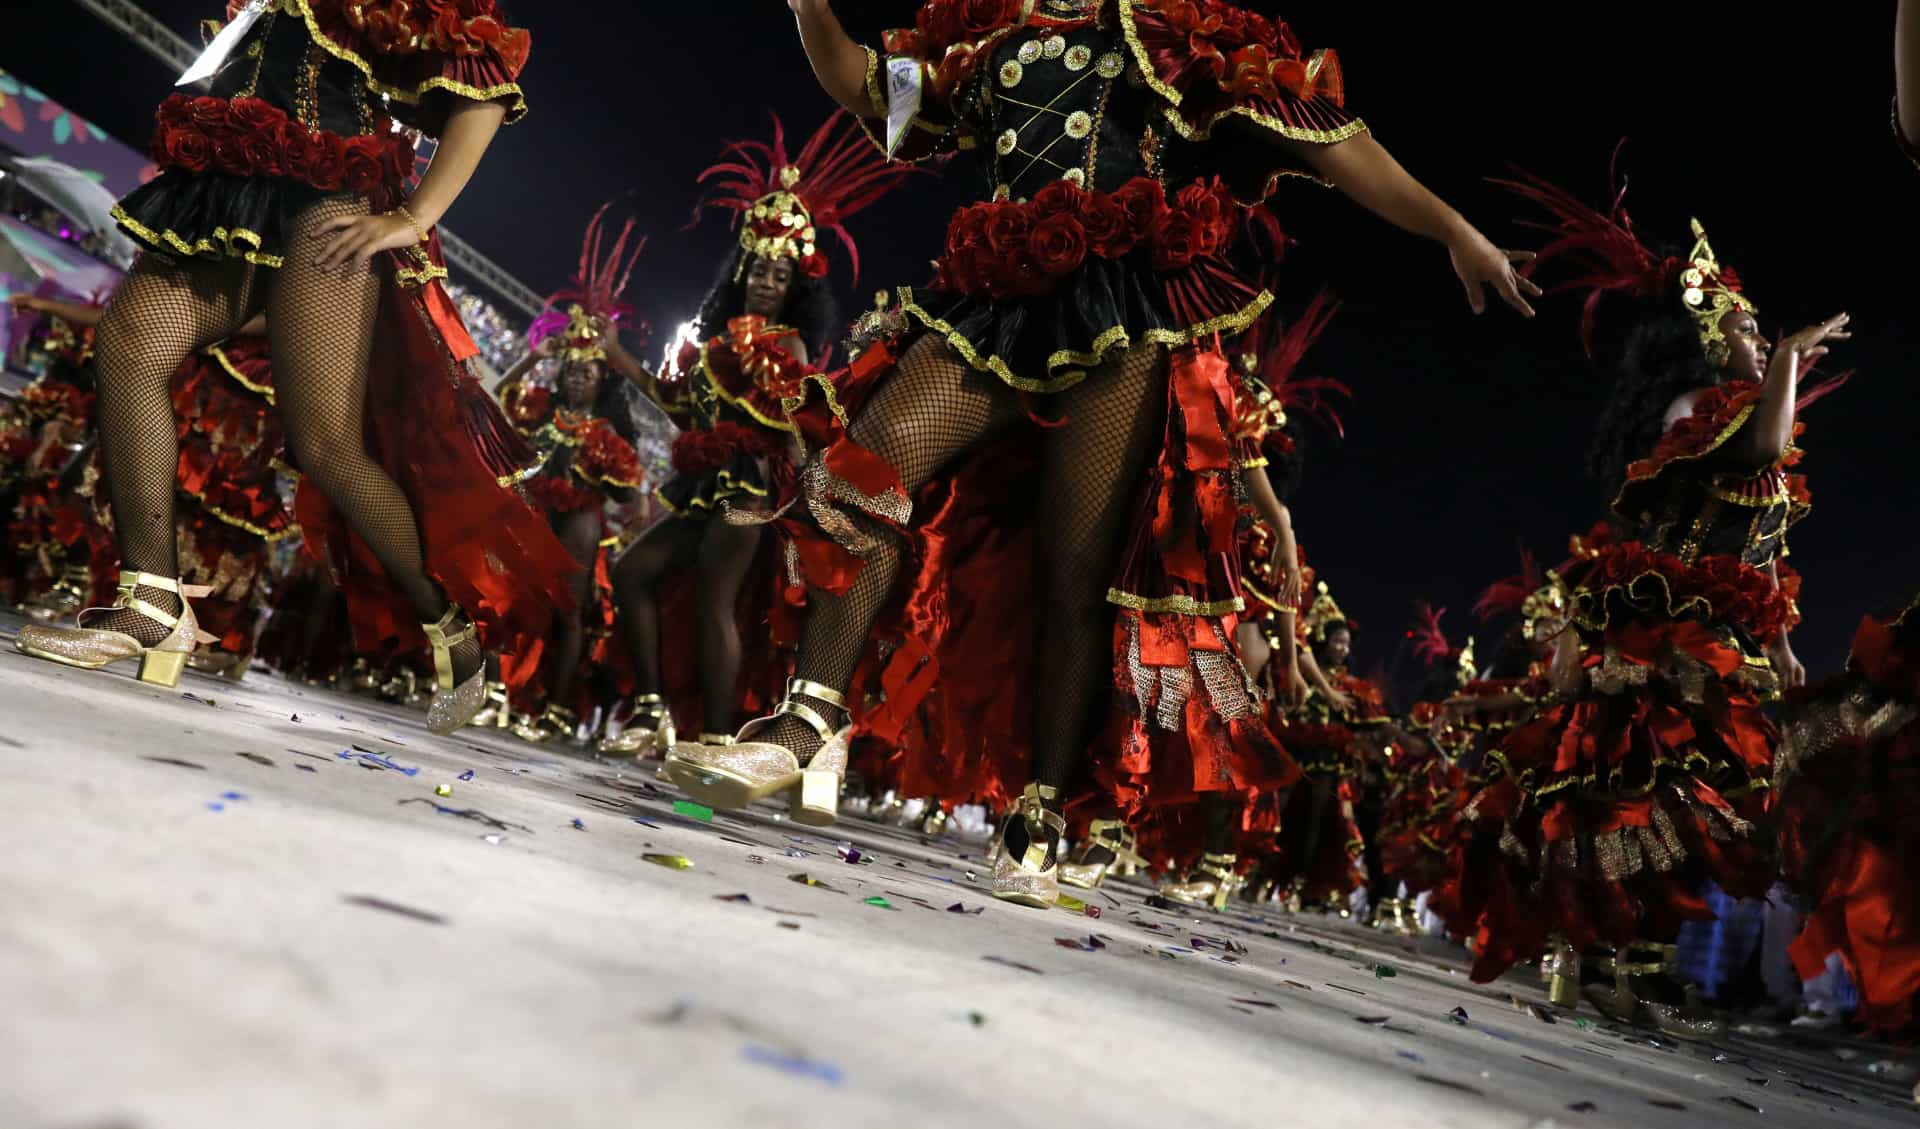 Carnival: the origins of one of the world's biggest street parties